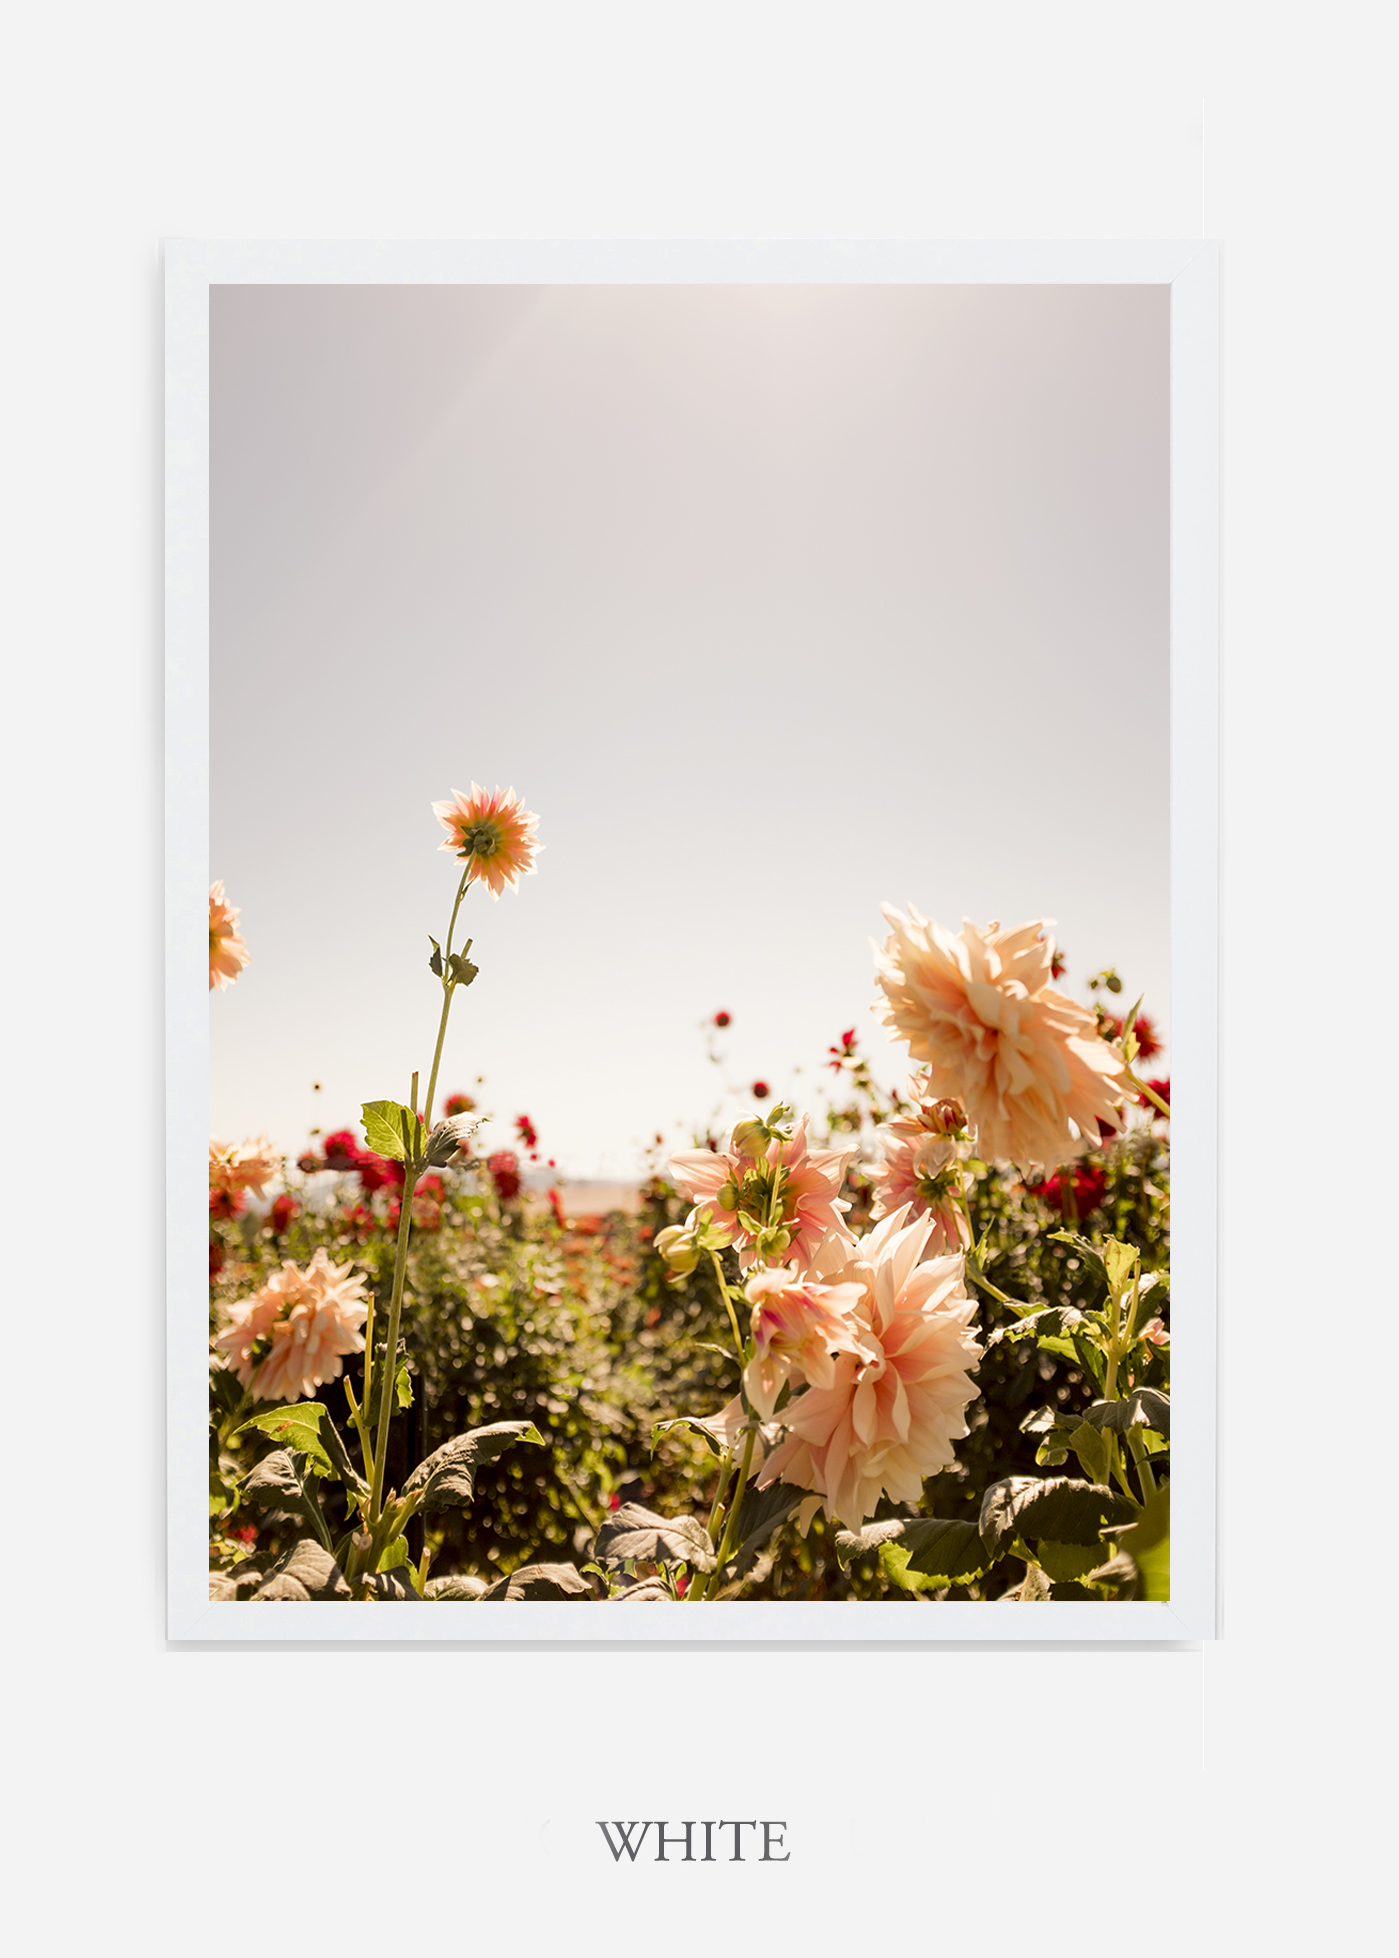 DahliaNo.6-white-frame-interior-design-botanical-print-art-wilder-california-wilder-paper.jpg